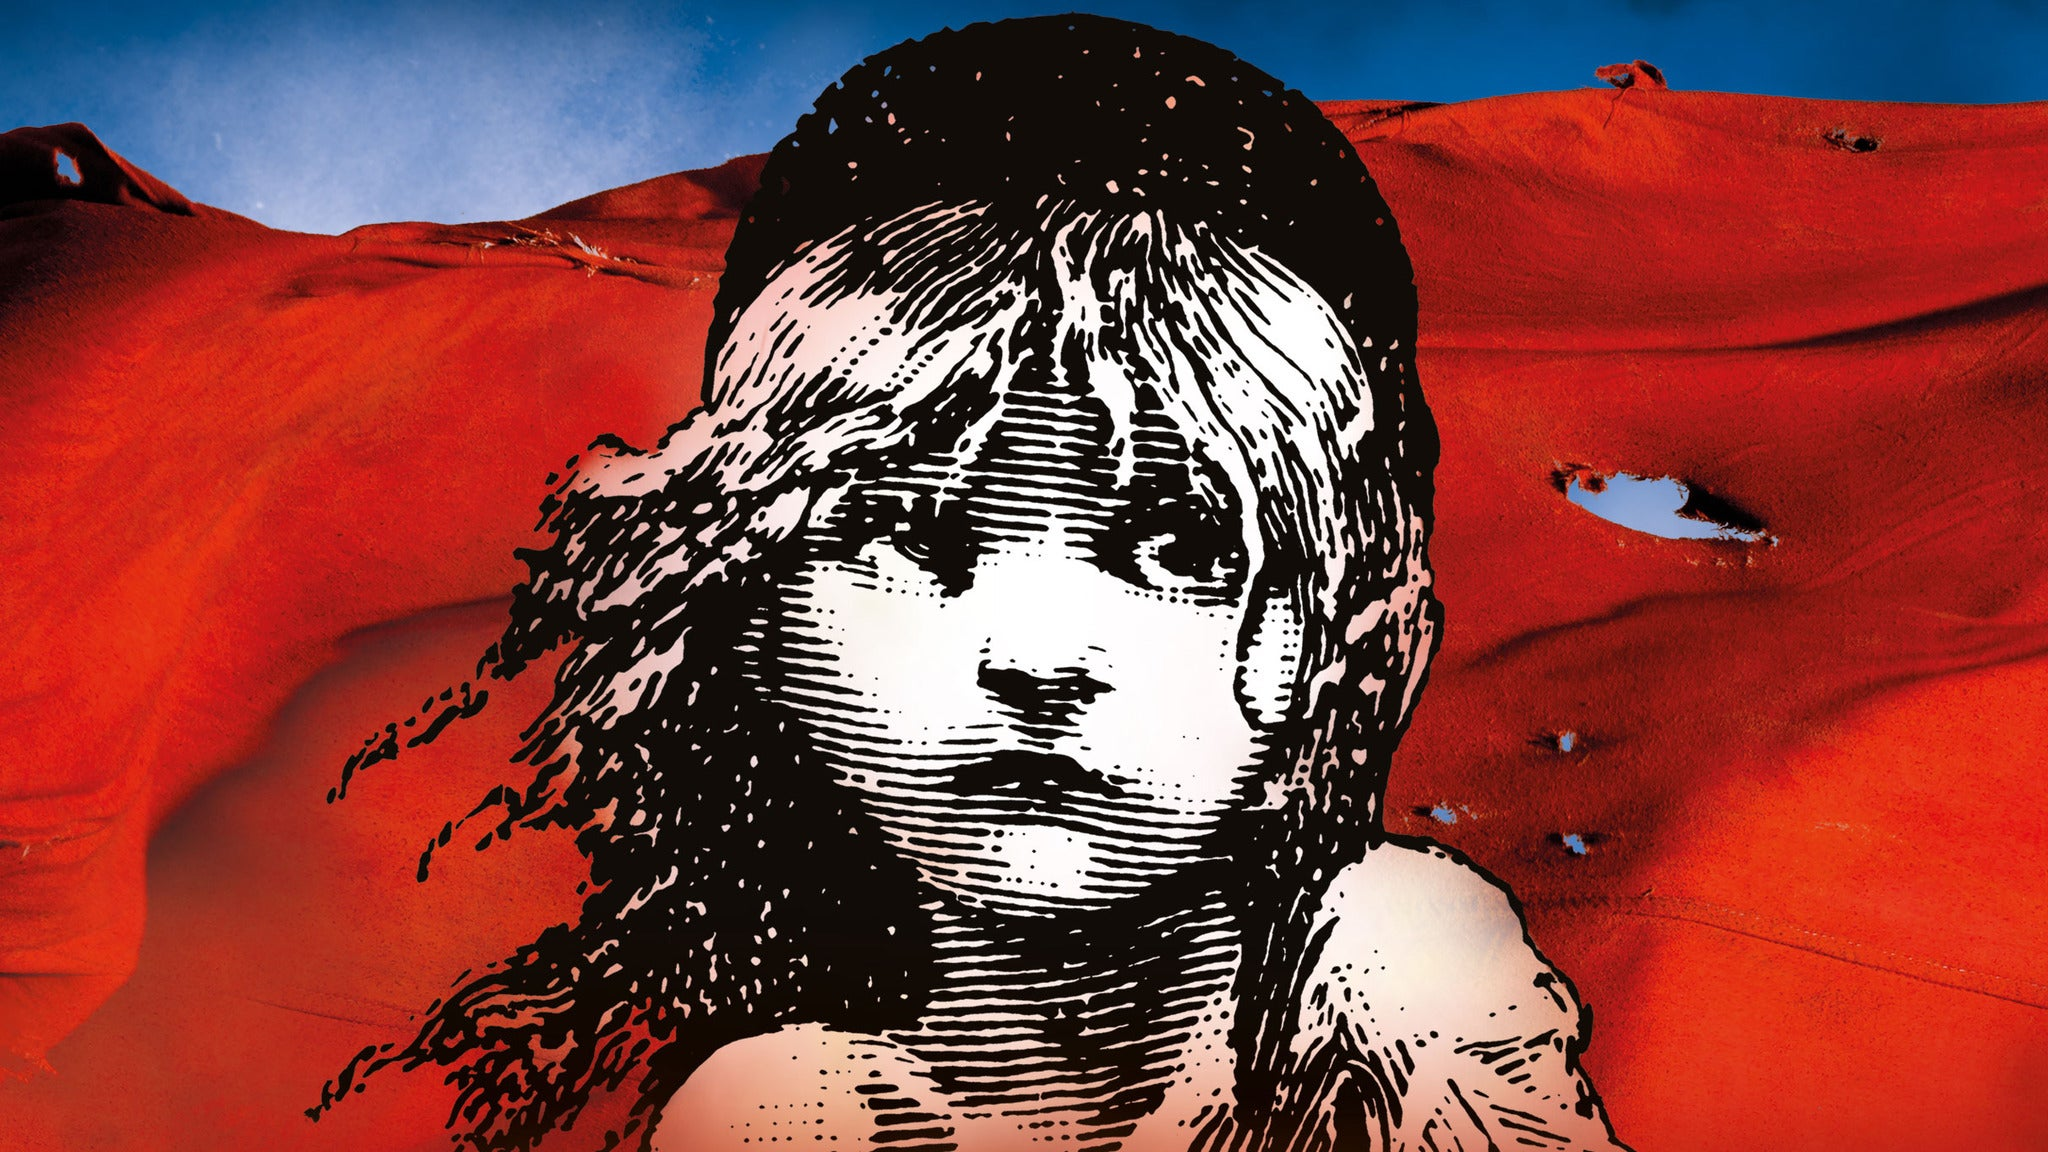 Les Miserables at Fox Theatre - Atlanta